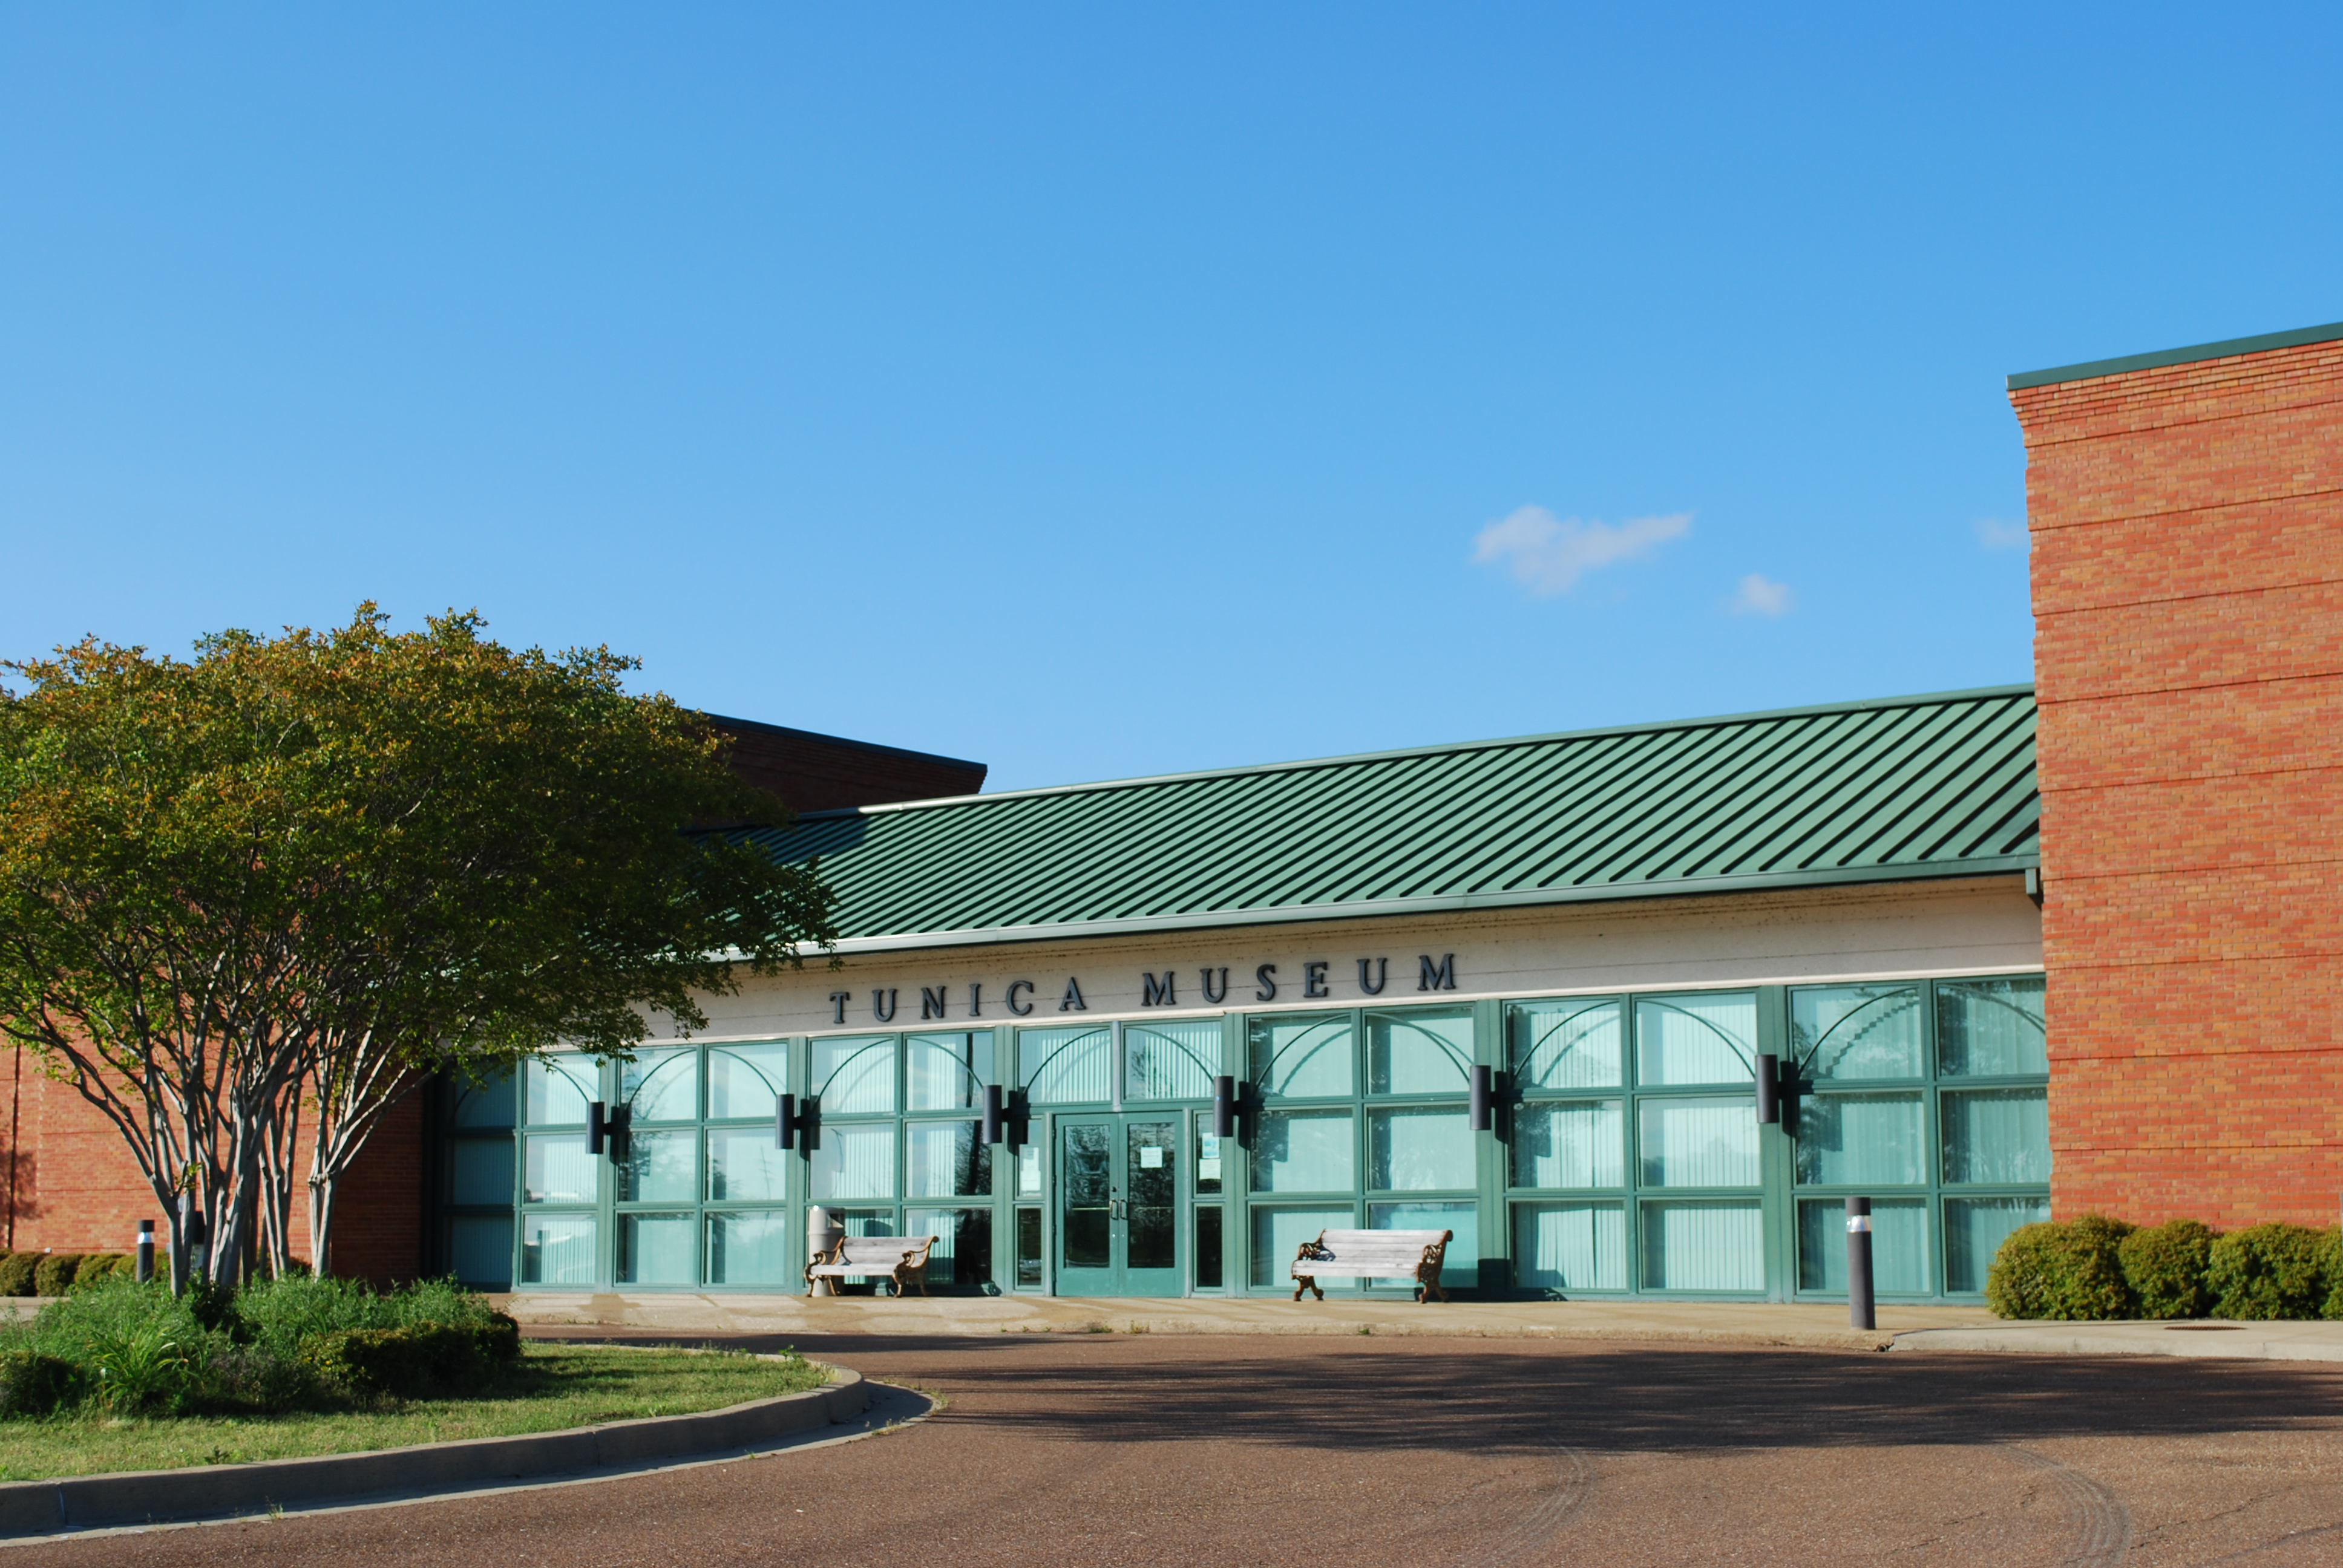 Tunica Museum was founded in 1997 by local residents to preserve and promote the county's history.